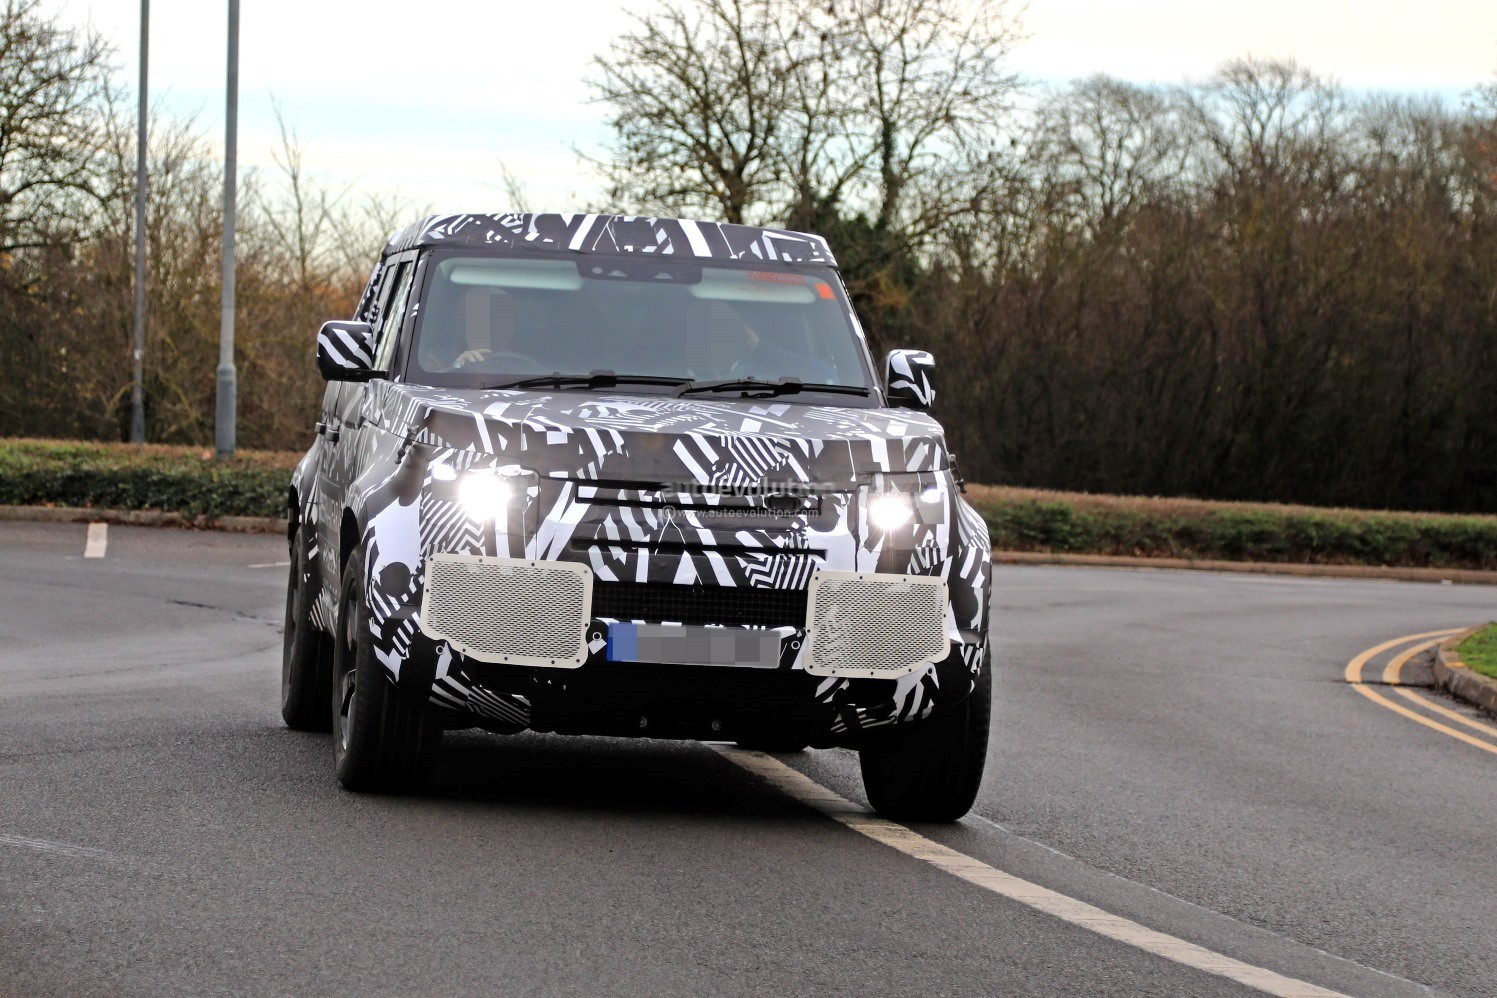 2020 Land Rover Defender >> 2020 Land Rover Defender Spied, Transitions To Unibody Construction - autoevolution